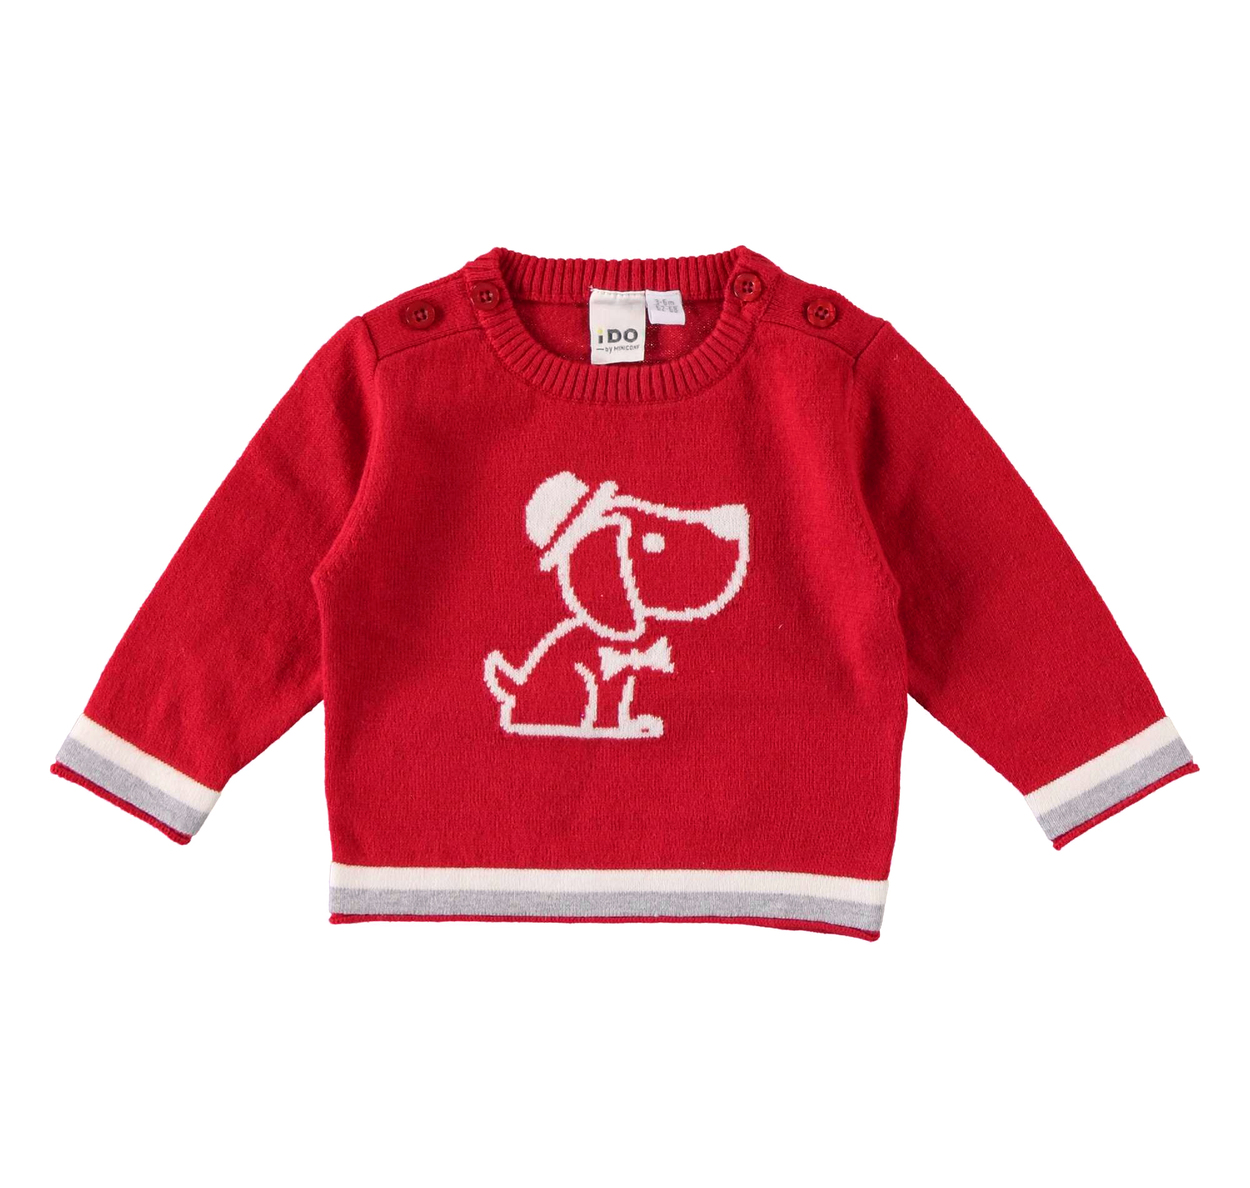 Dodipeto -i- T Red snoopy jumper IDO6